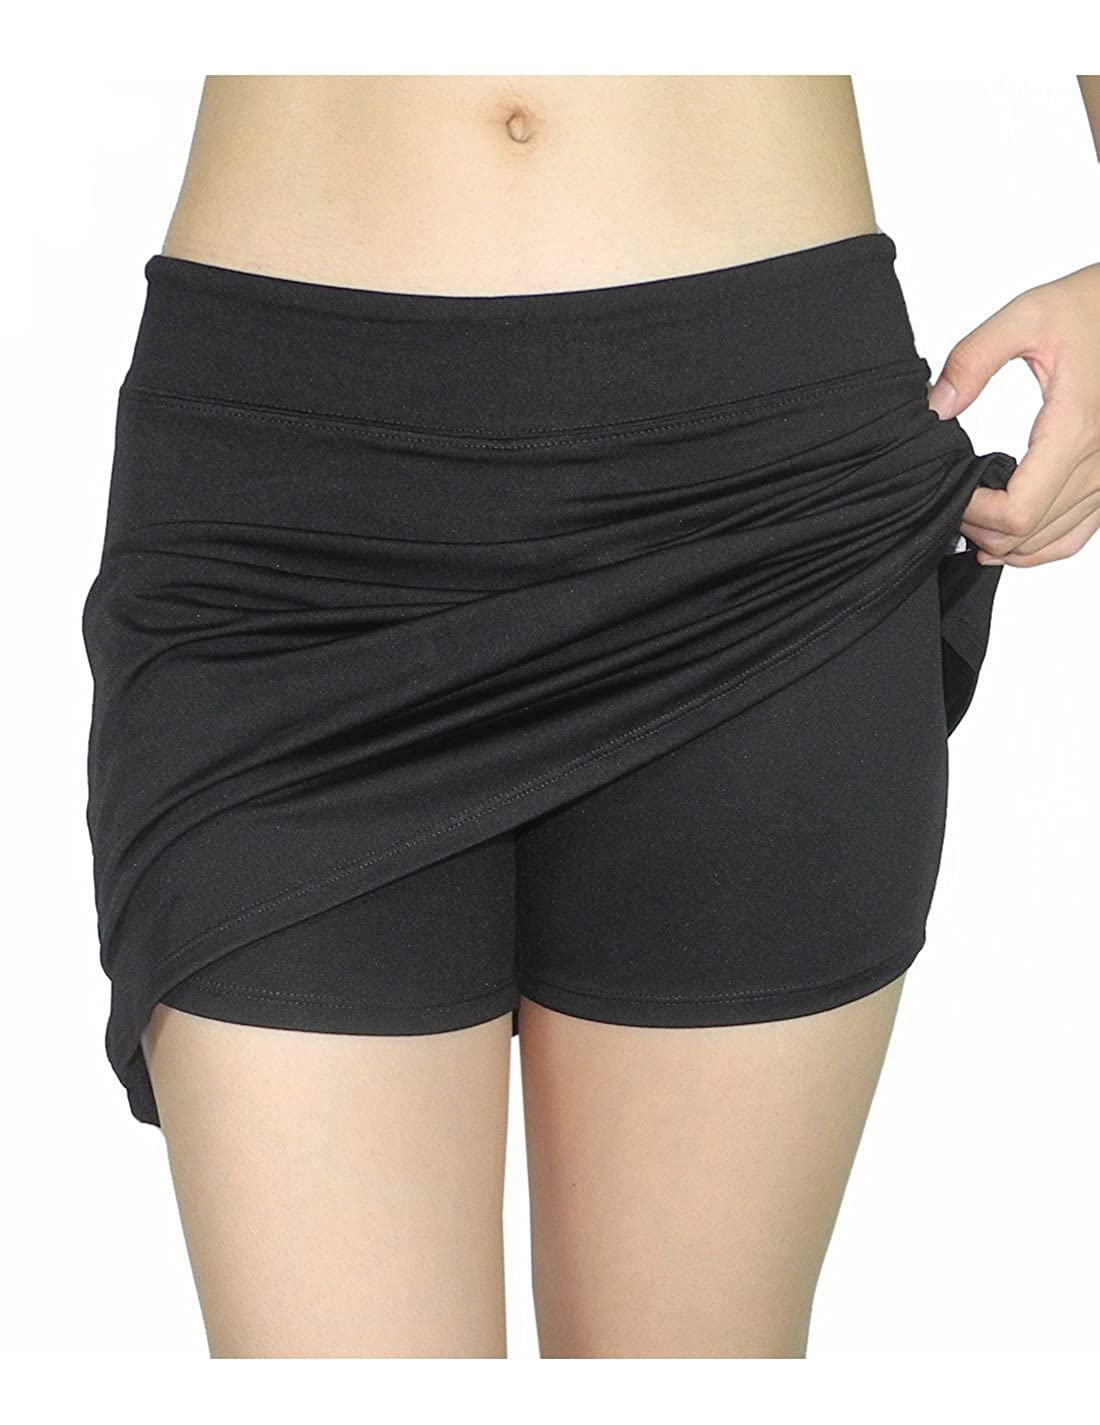 7f146ee924267 Tranquility by Colorado Clothing Womens Fitness Training   Yoga Skort at  Amazon Women s Clothing store